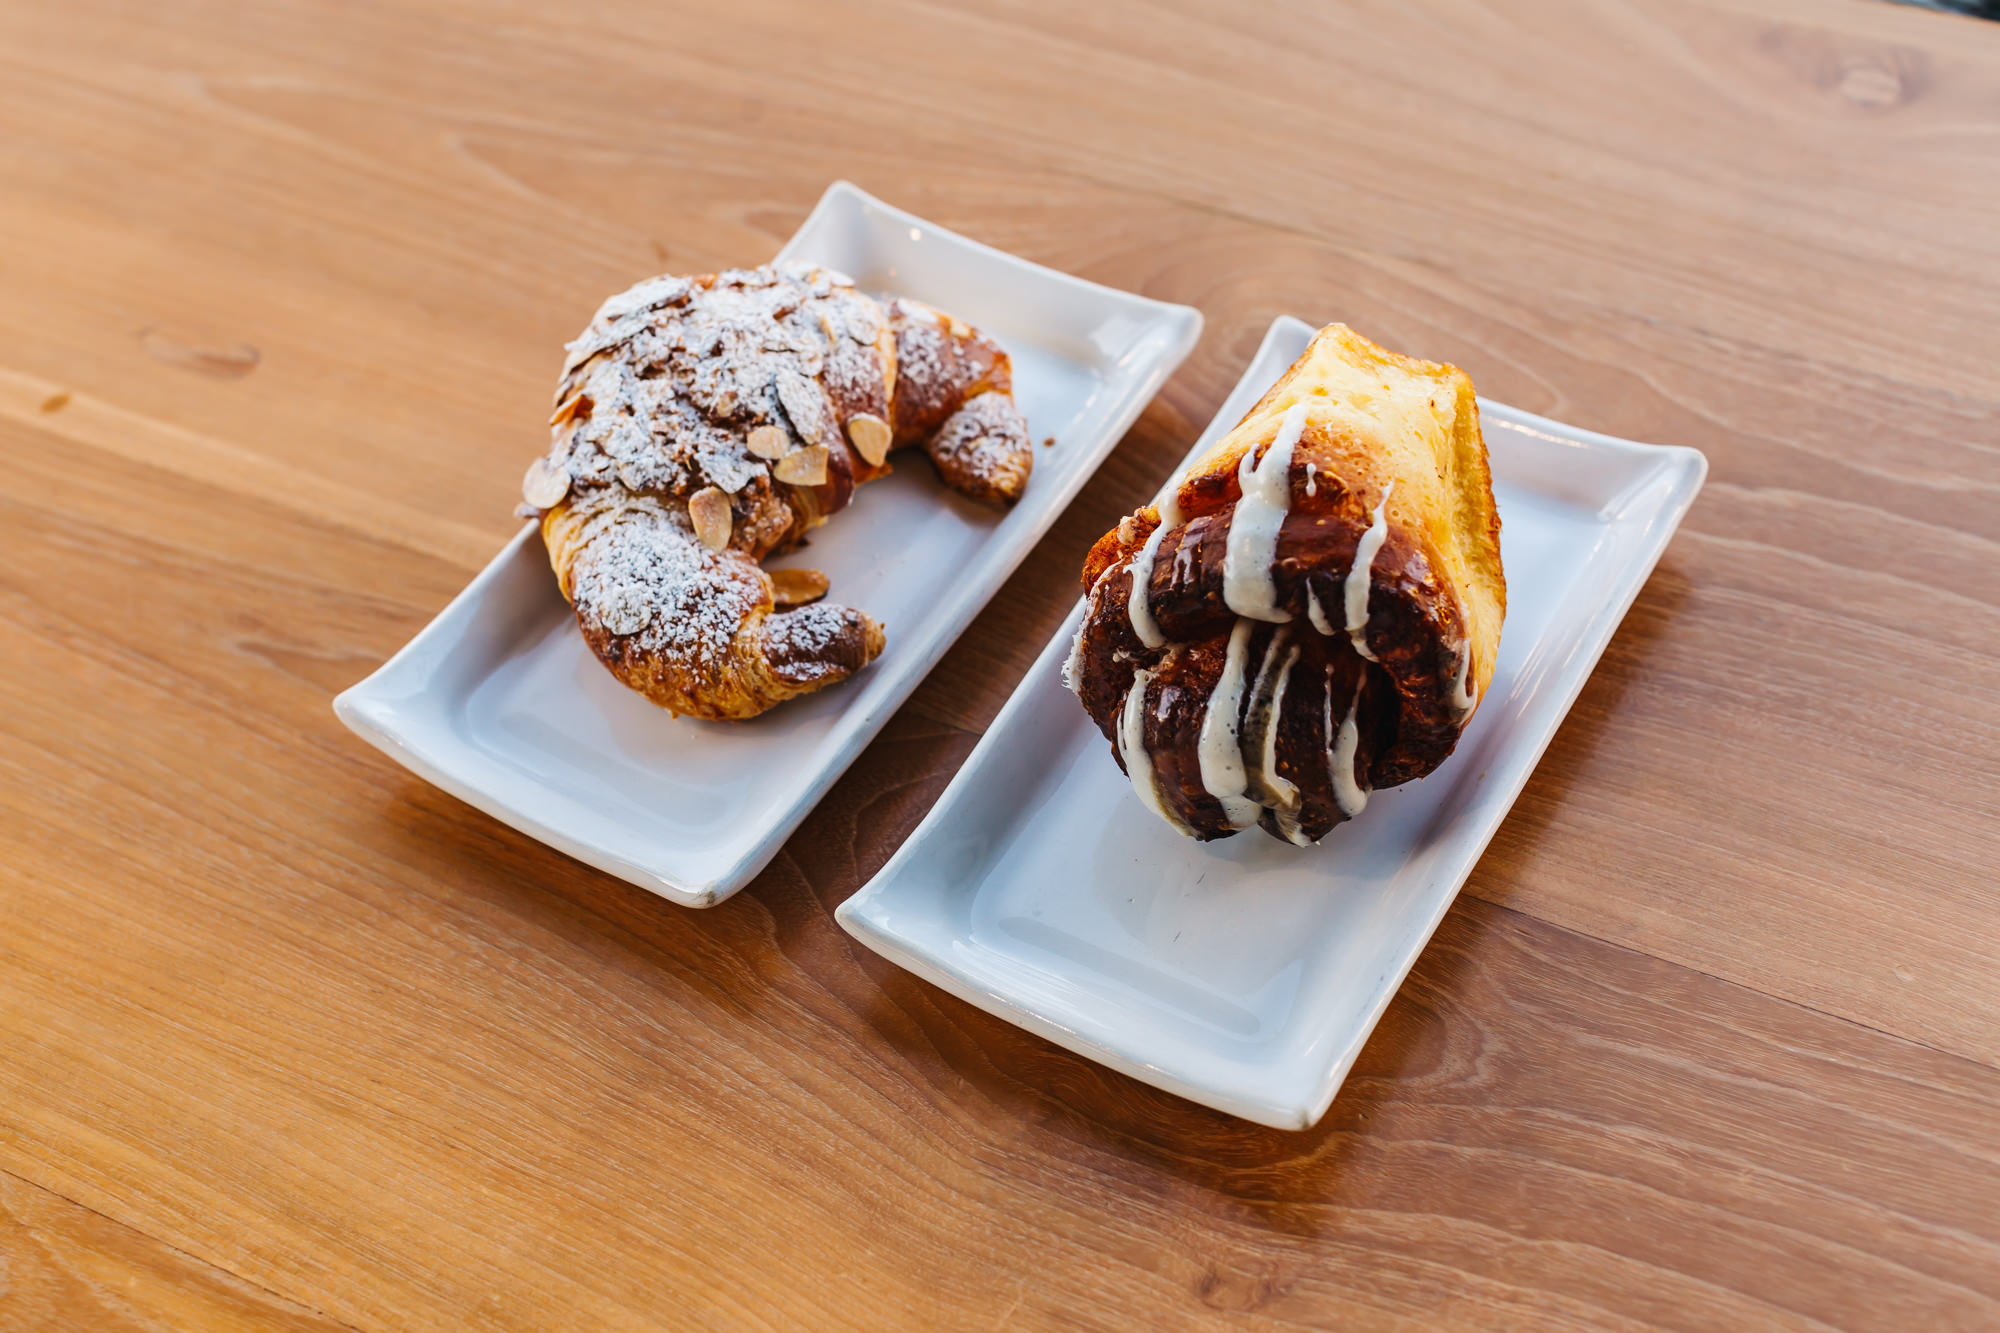 Fresh baked pastries from   Lofy Coffee Co.